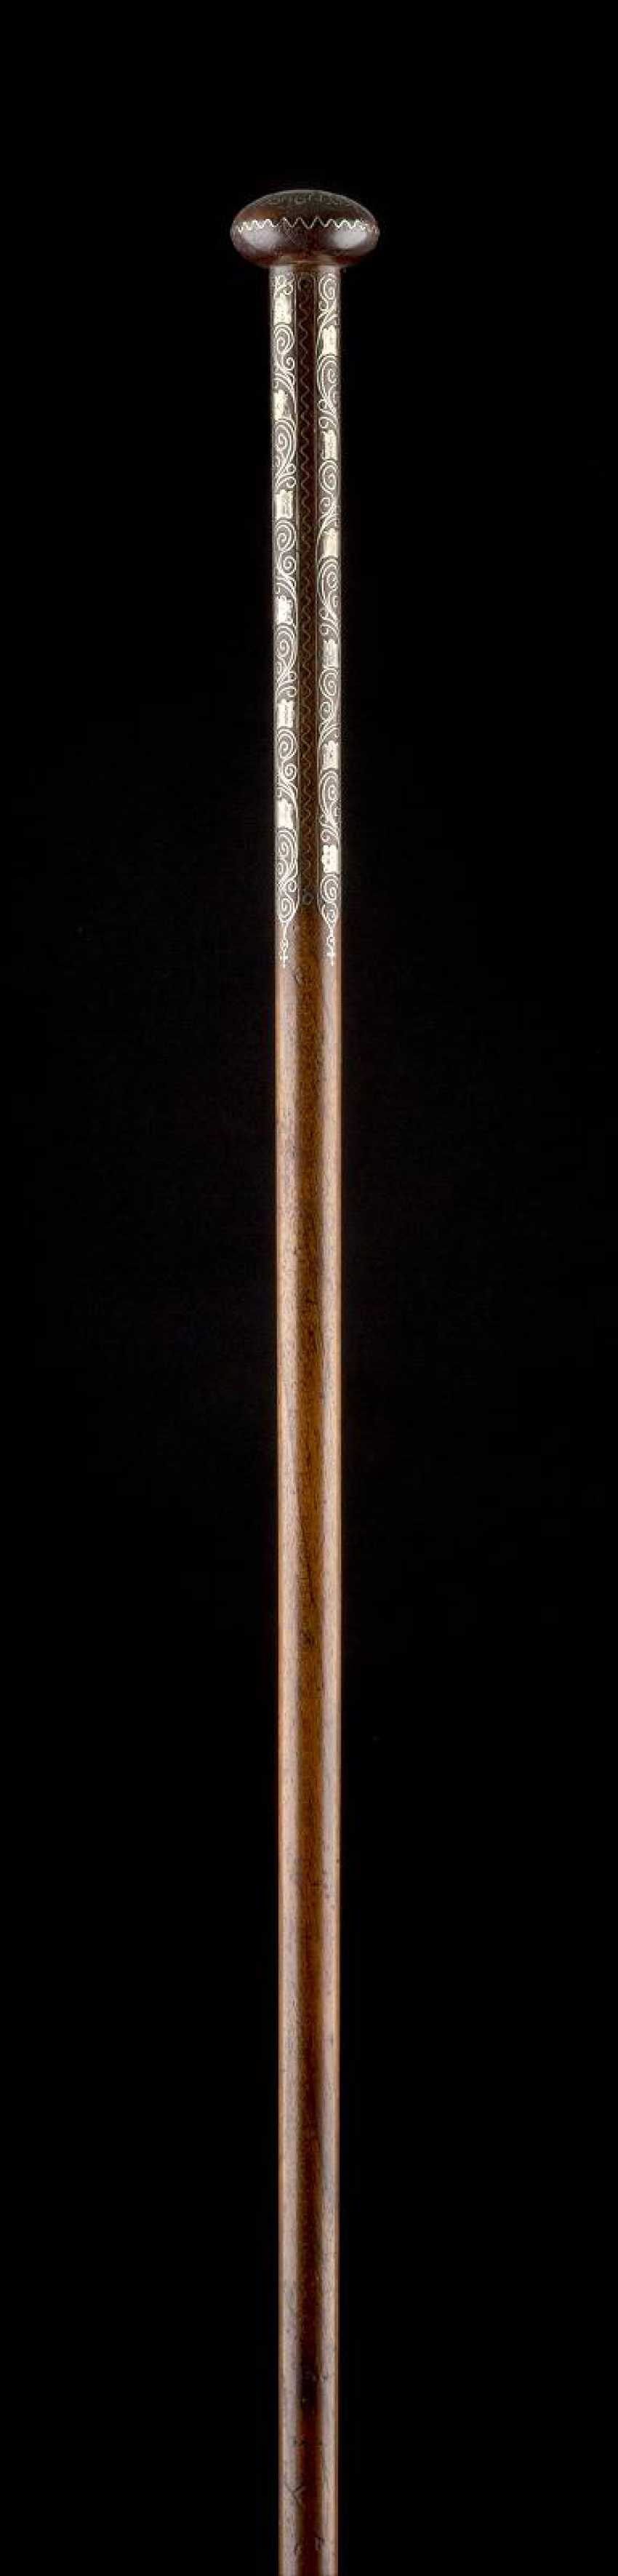 WALKING STICK WITH ARABIC CALLIGRAPHY - photo 1